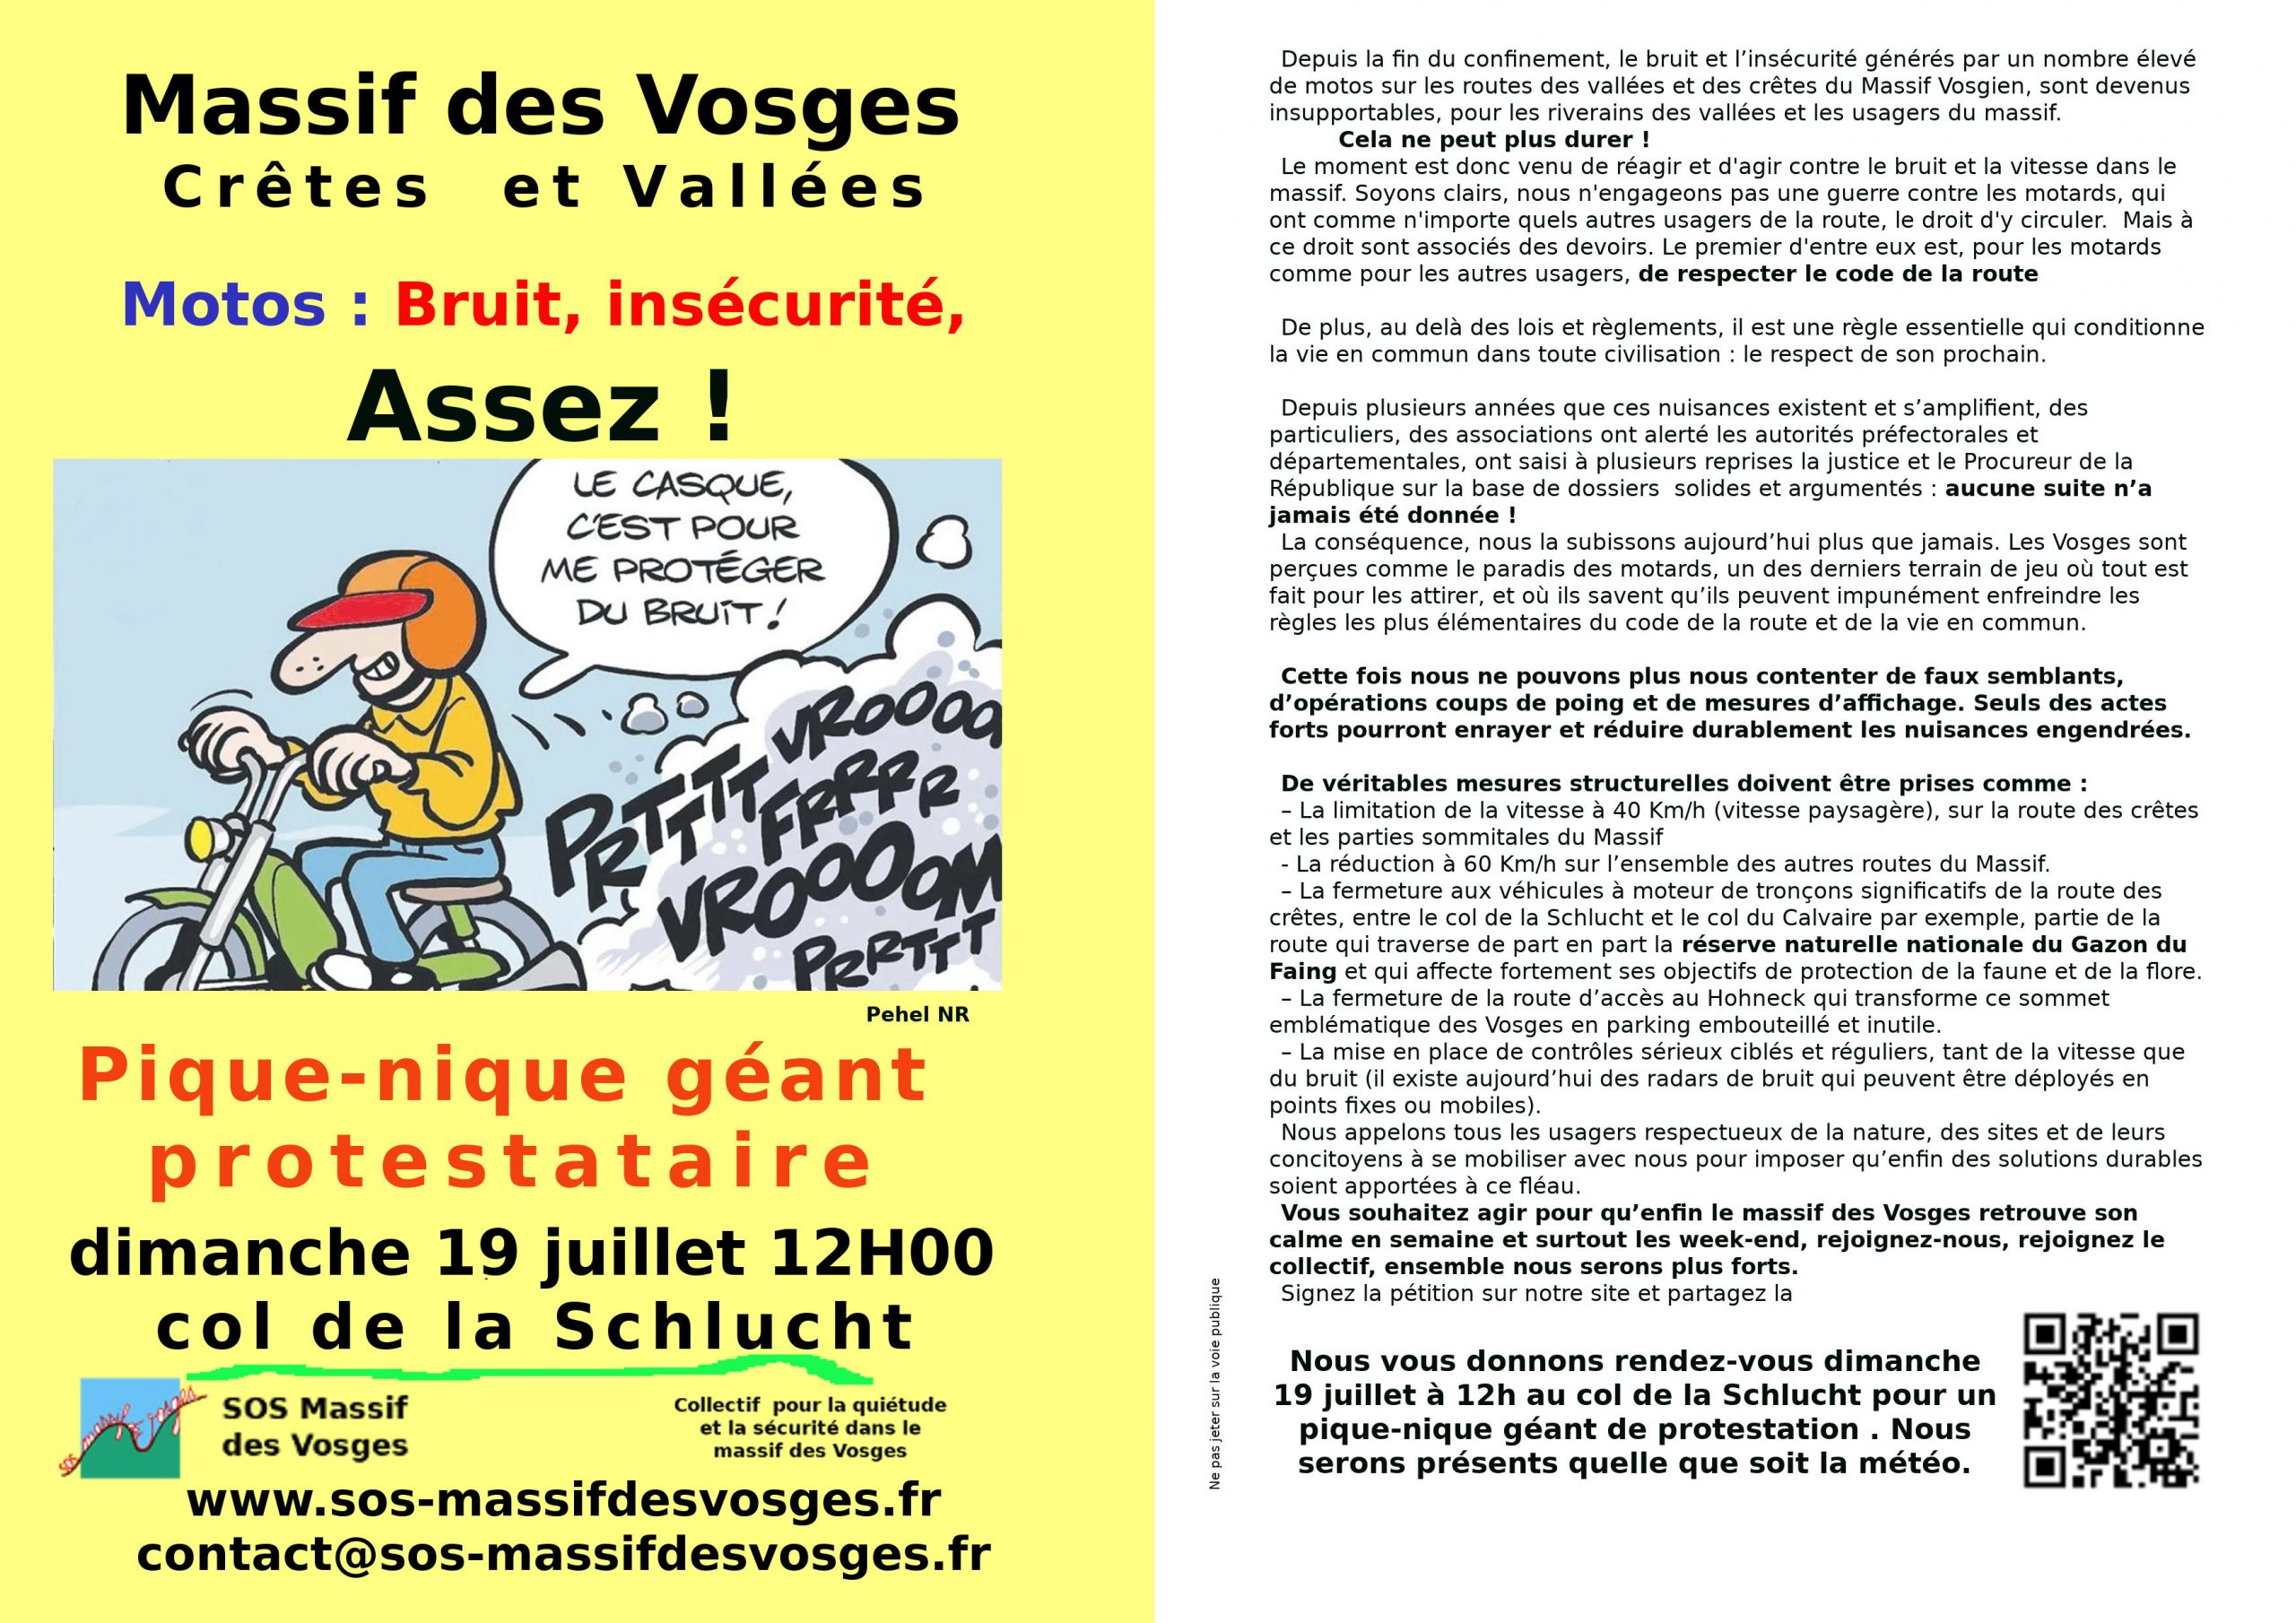 http://www.sos-massifdesvosges.fr/wp-content/uploads/2020/06/Flyer-2-X-A5-recto-verso-finalis%C3%A9-scaled.jpg